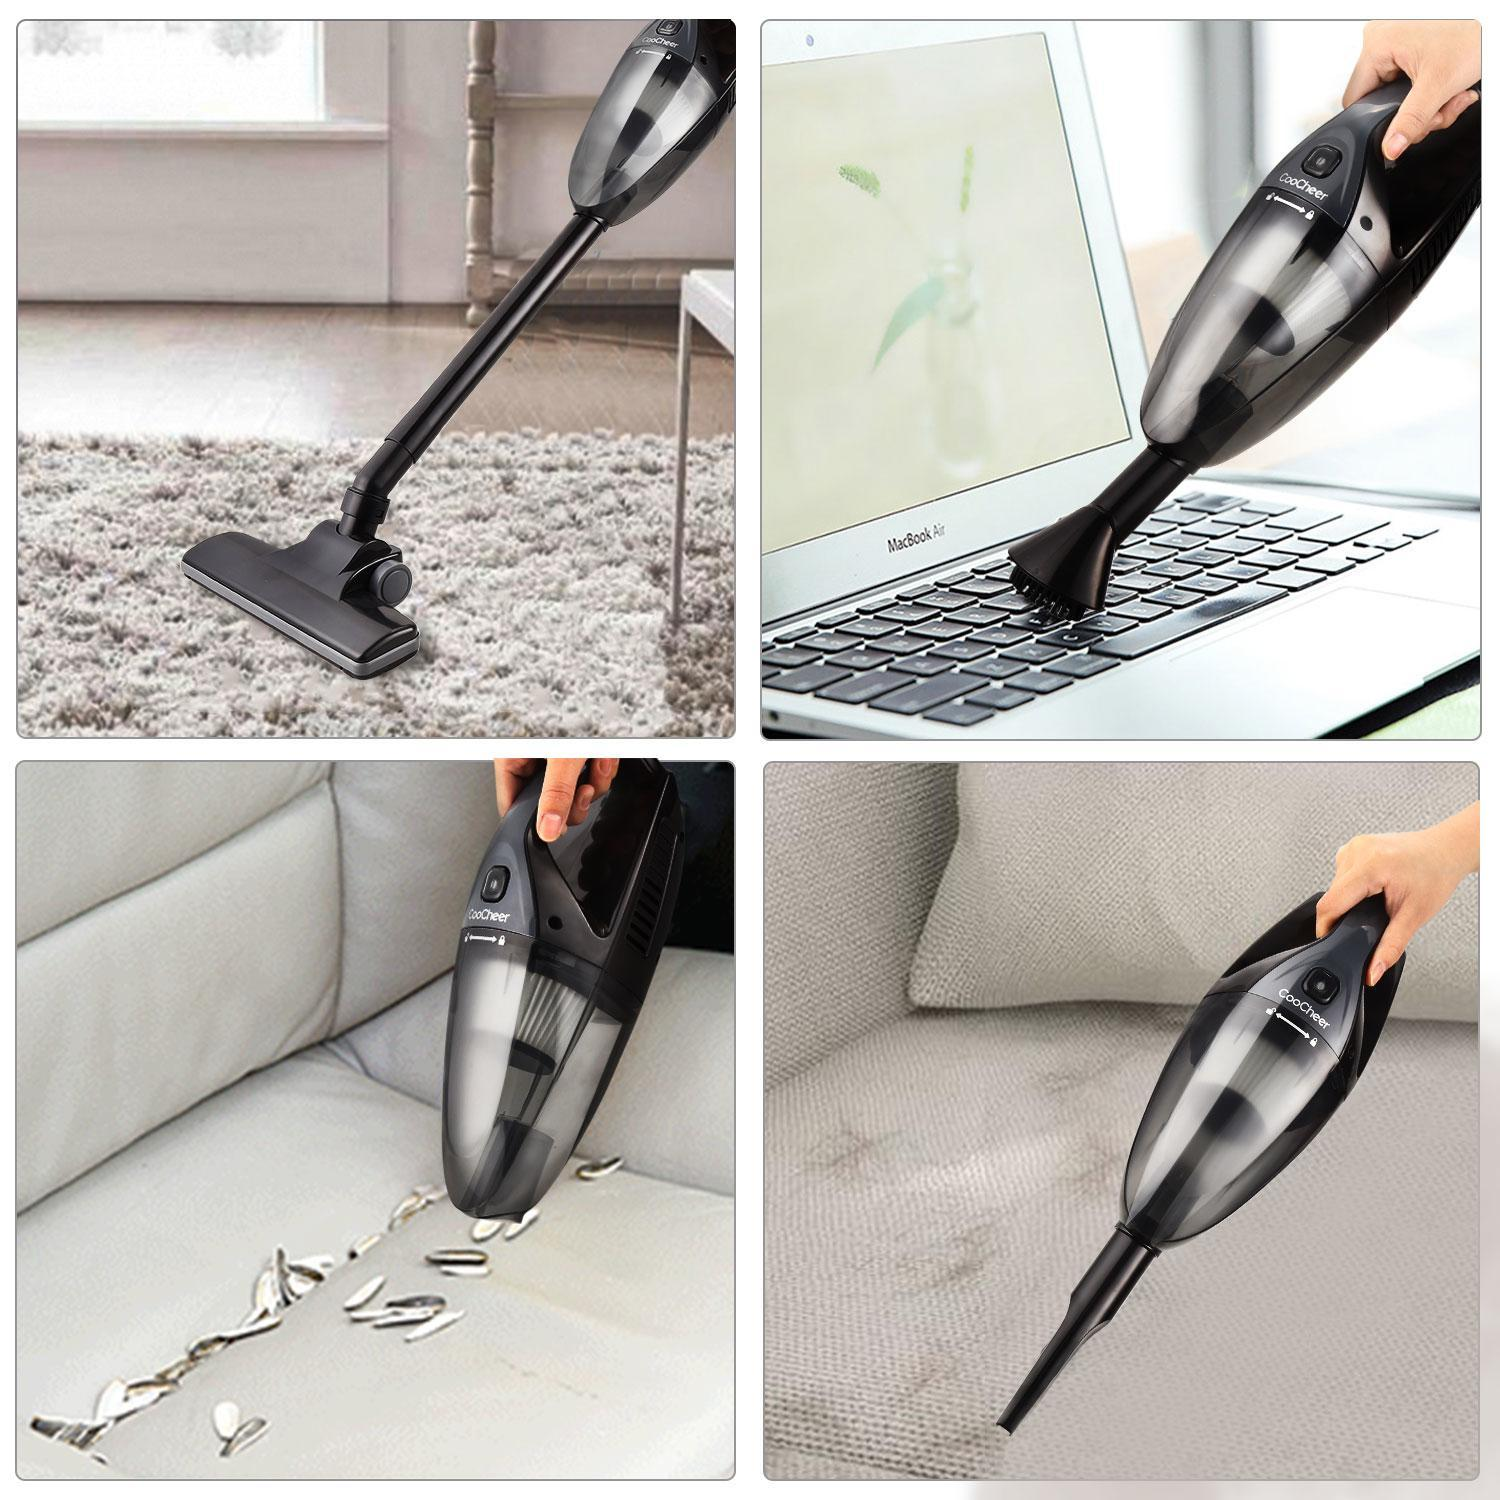 Portable Cordless Handheld Vacuum Cleaner Dustbuster for Home Office Auto Car 005196 SPTE